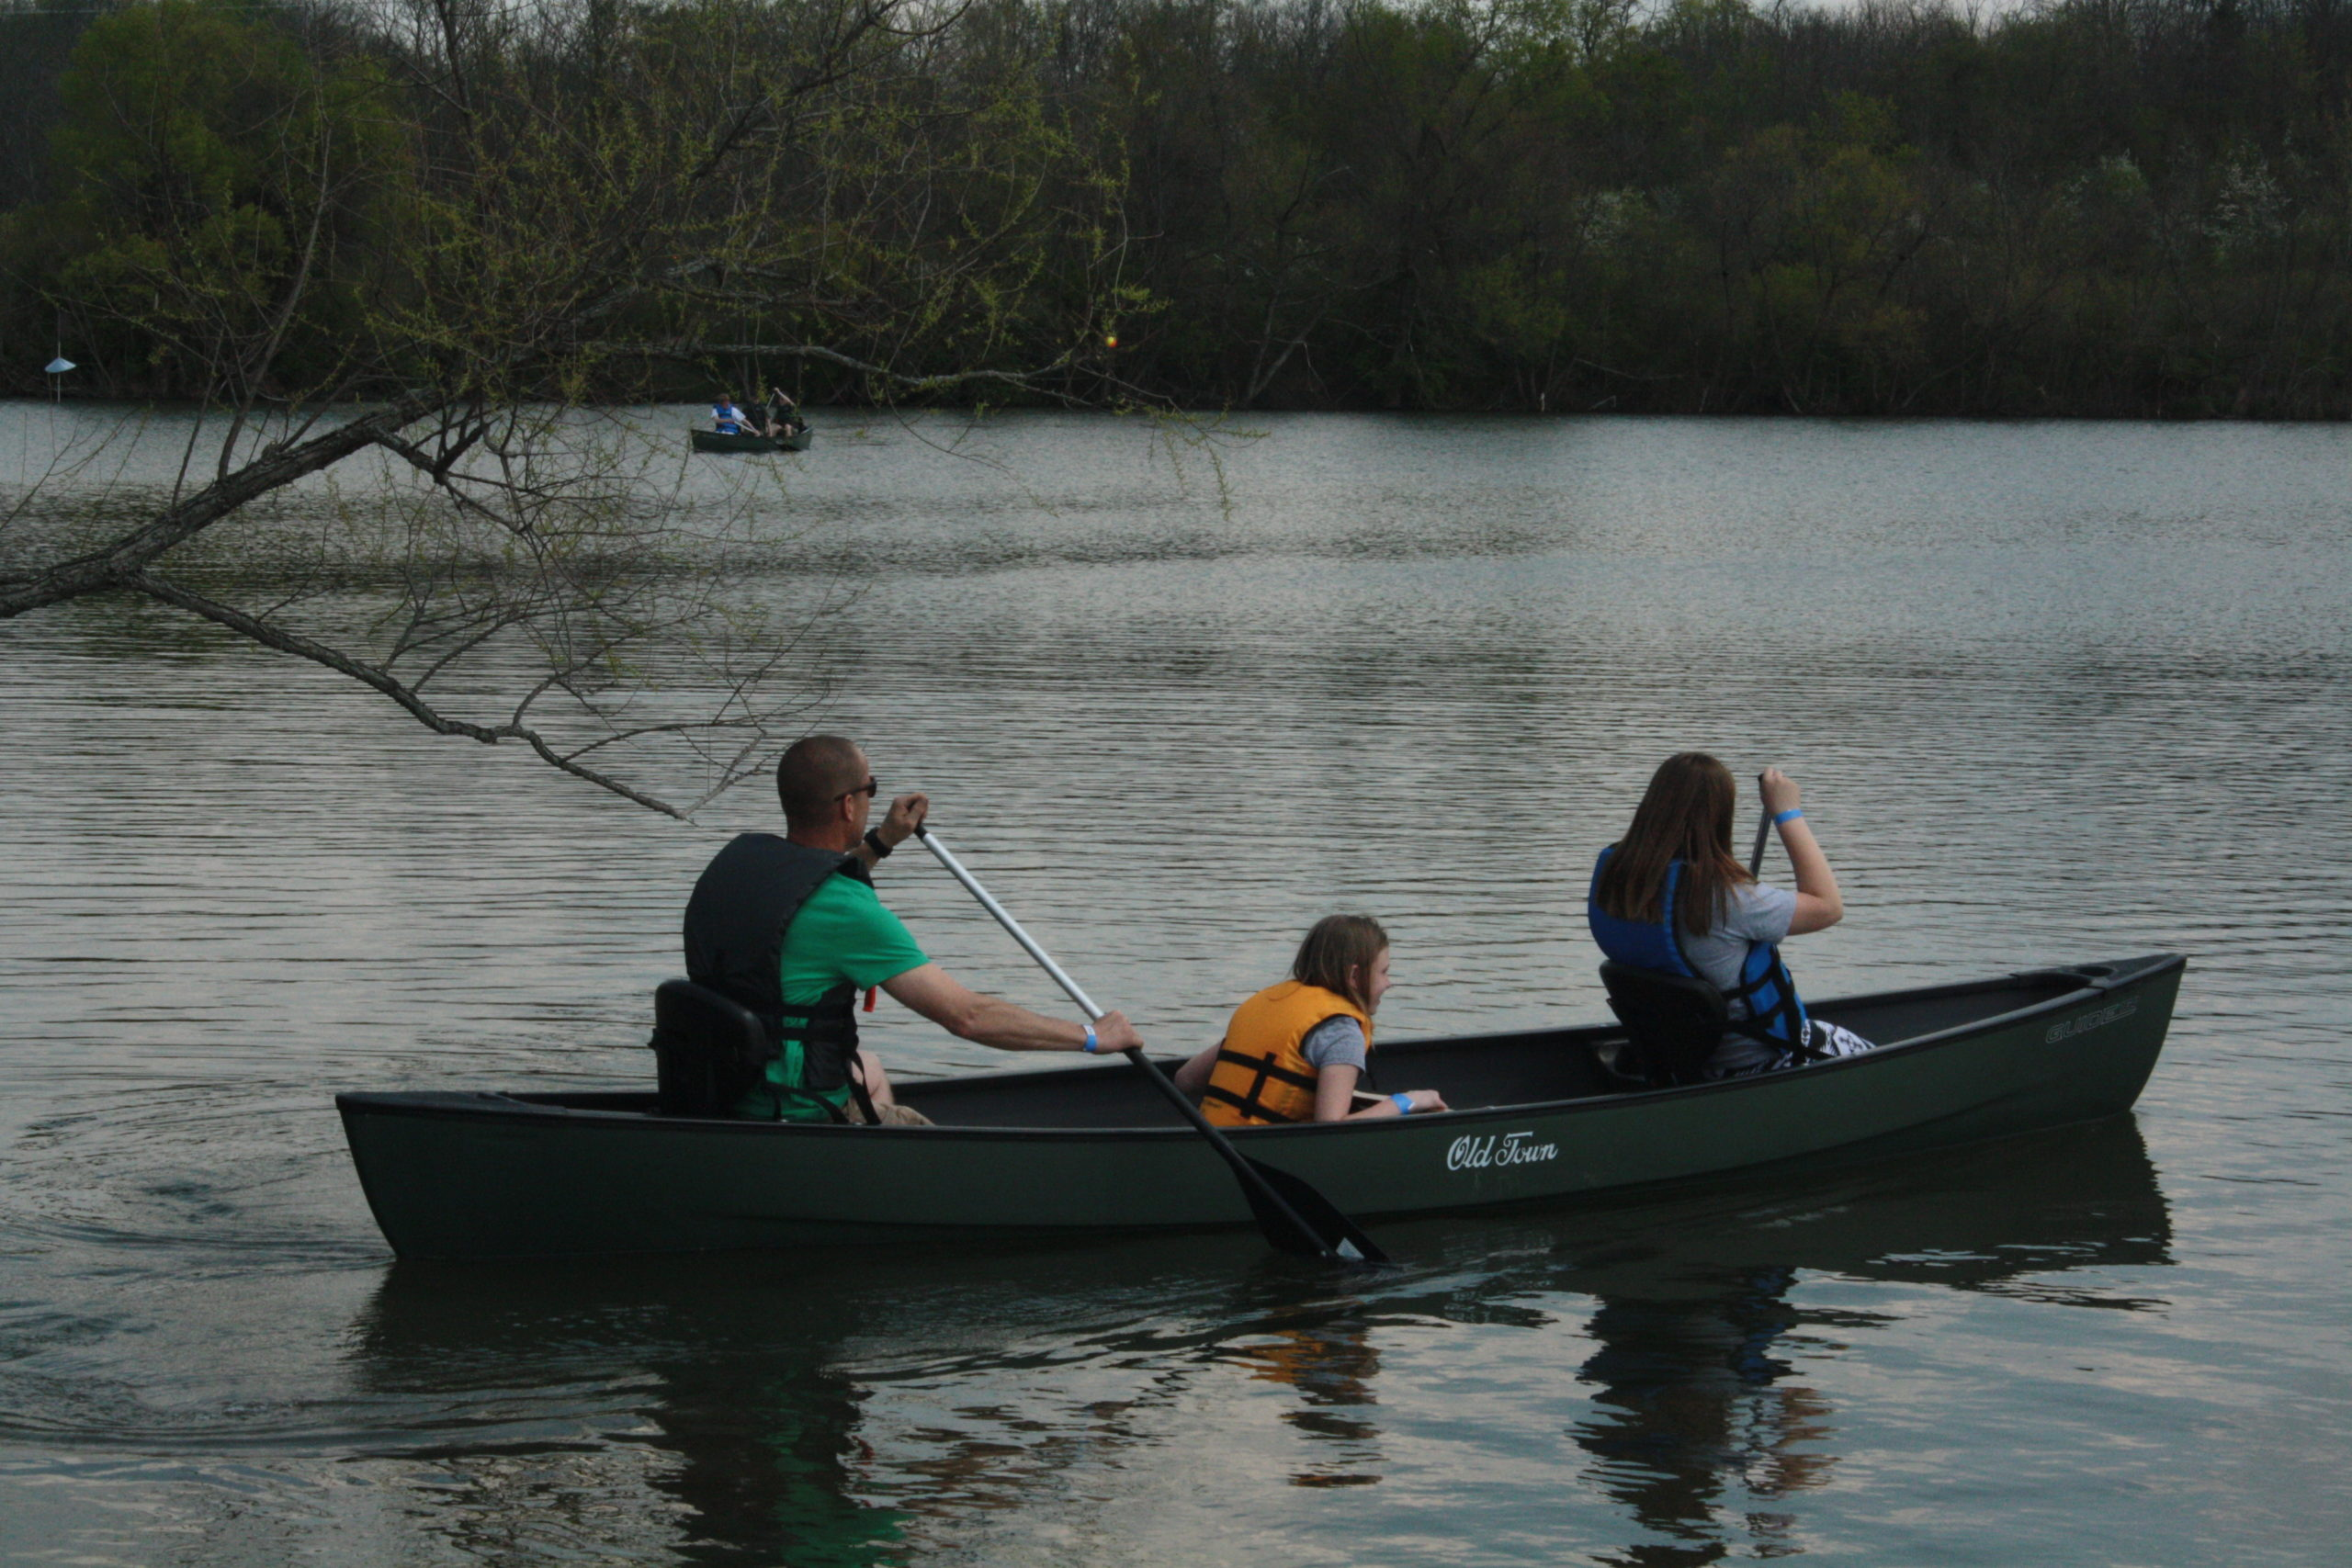 A group of people canoeing out on the water